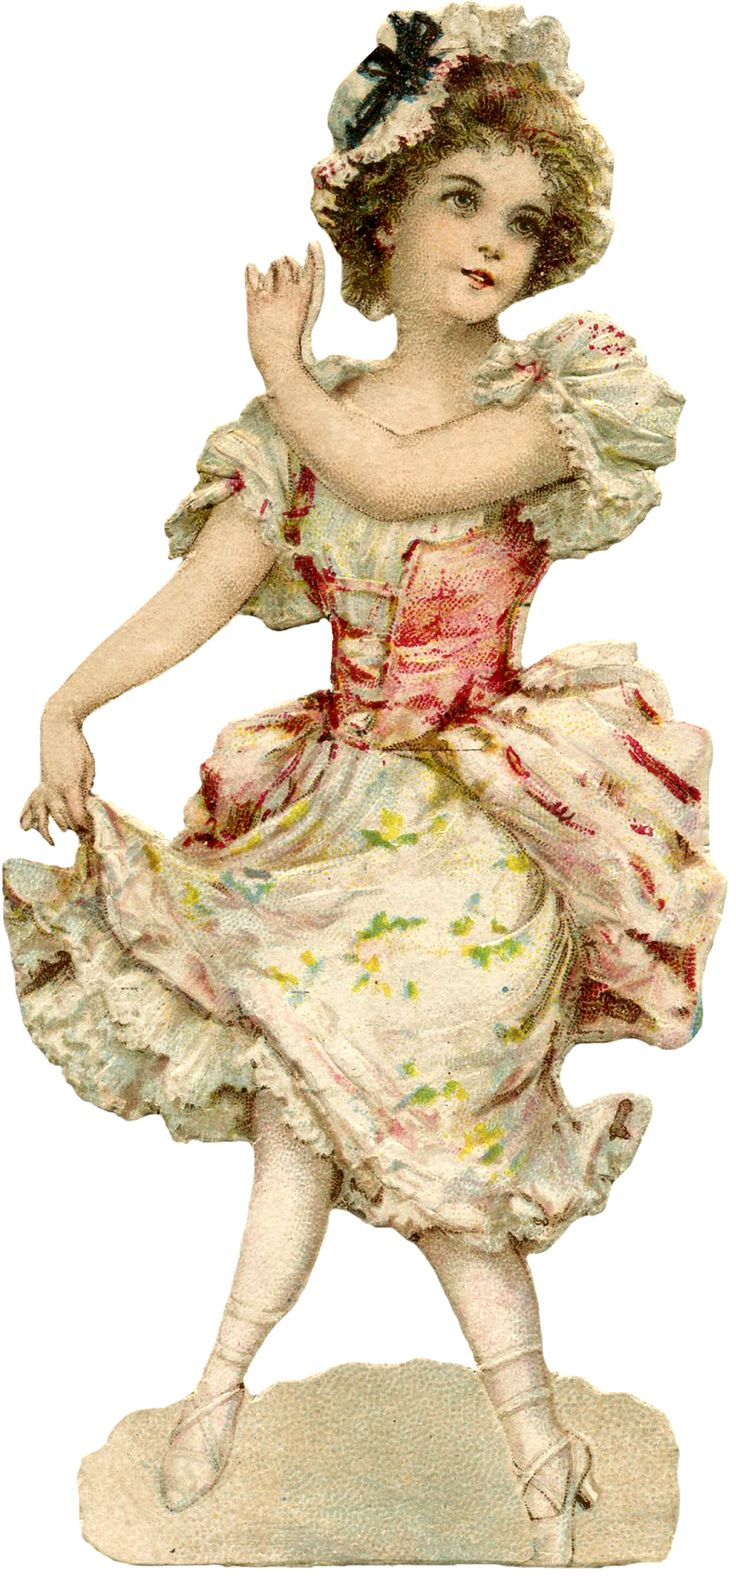 Free vintage ephemera. Dancing Colonial Miss Image - Girl. Pink. With thanks to the Graphics Fairy.